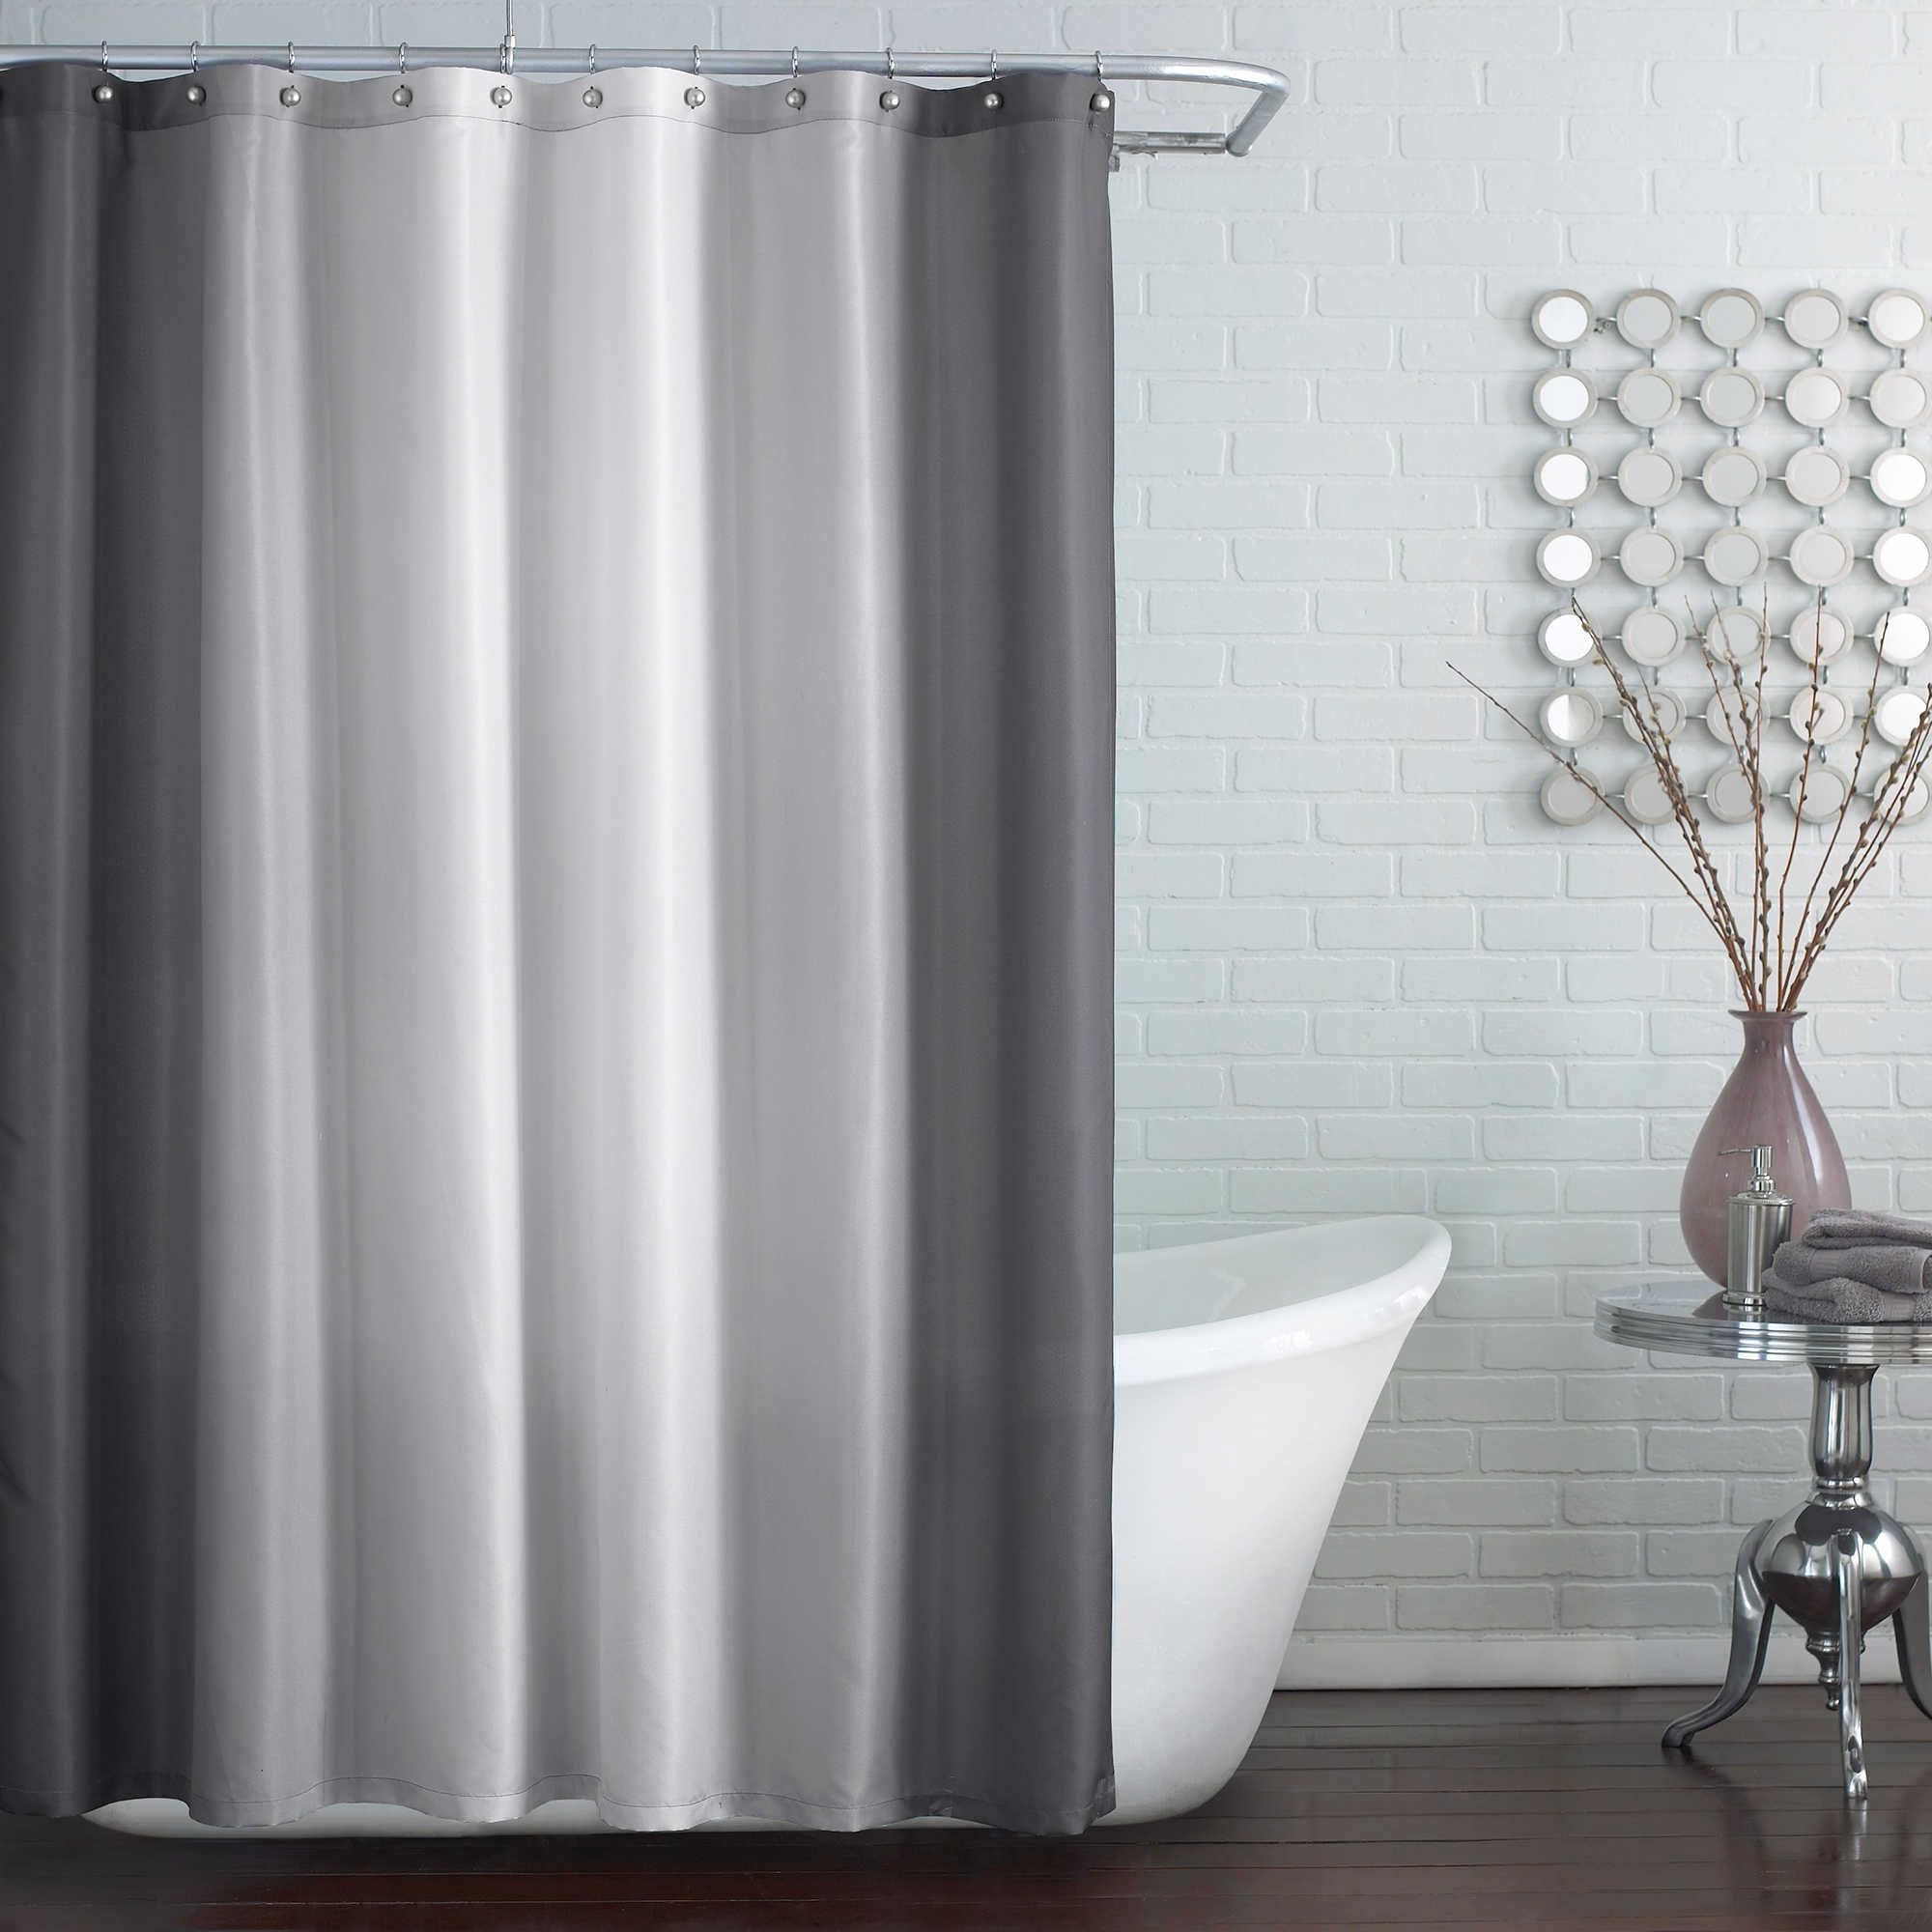 Fancy Grey Shower Curtains | http://legalize-crew.com | Pinterest ...